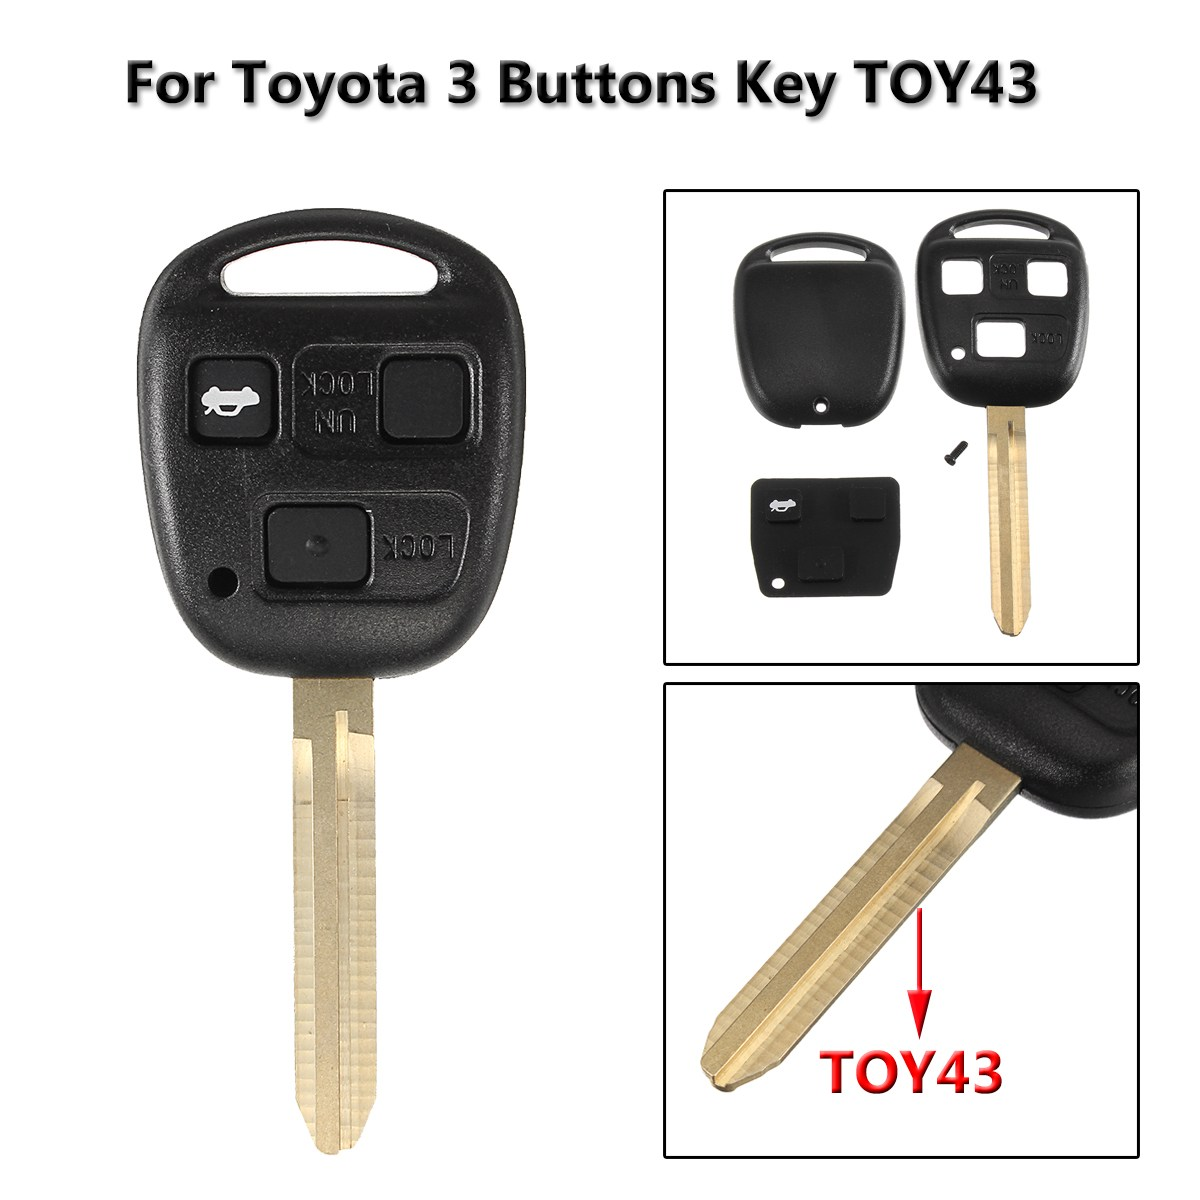 3 <font><b>Buttons</b></font> Car <font><b>Remote</b></font> <font><b>Key</b></font> Case Fob Cover <font><b>Key</b></font> Shell For <font><b>Toyota</b></font> <font><b>Avensis</b></font> Corolla Yaris Rav4 image